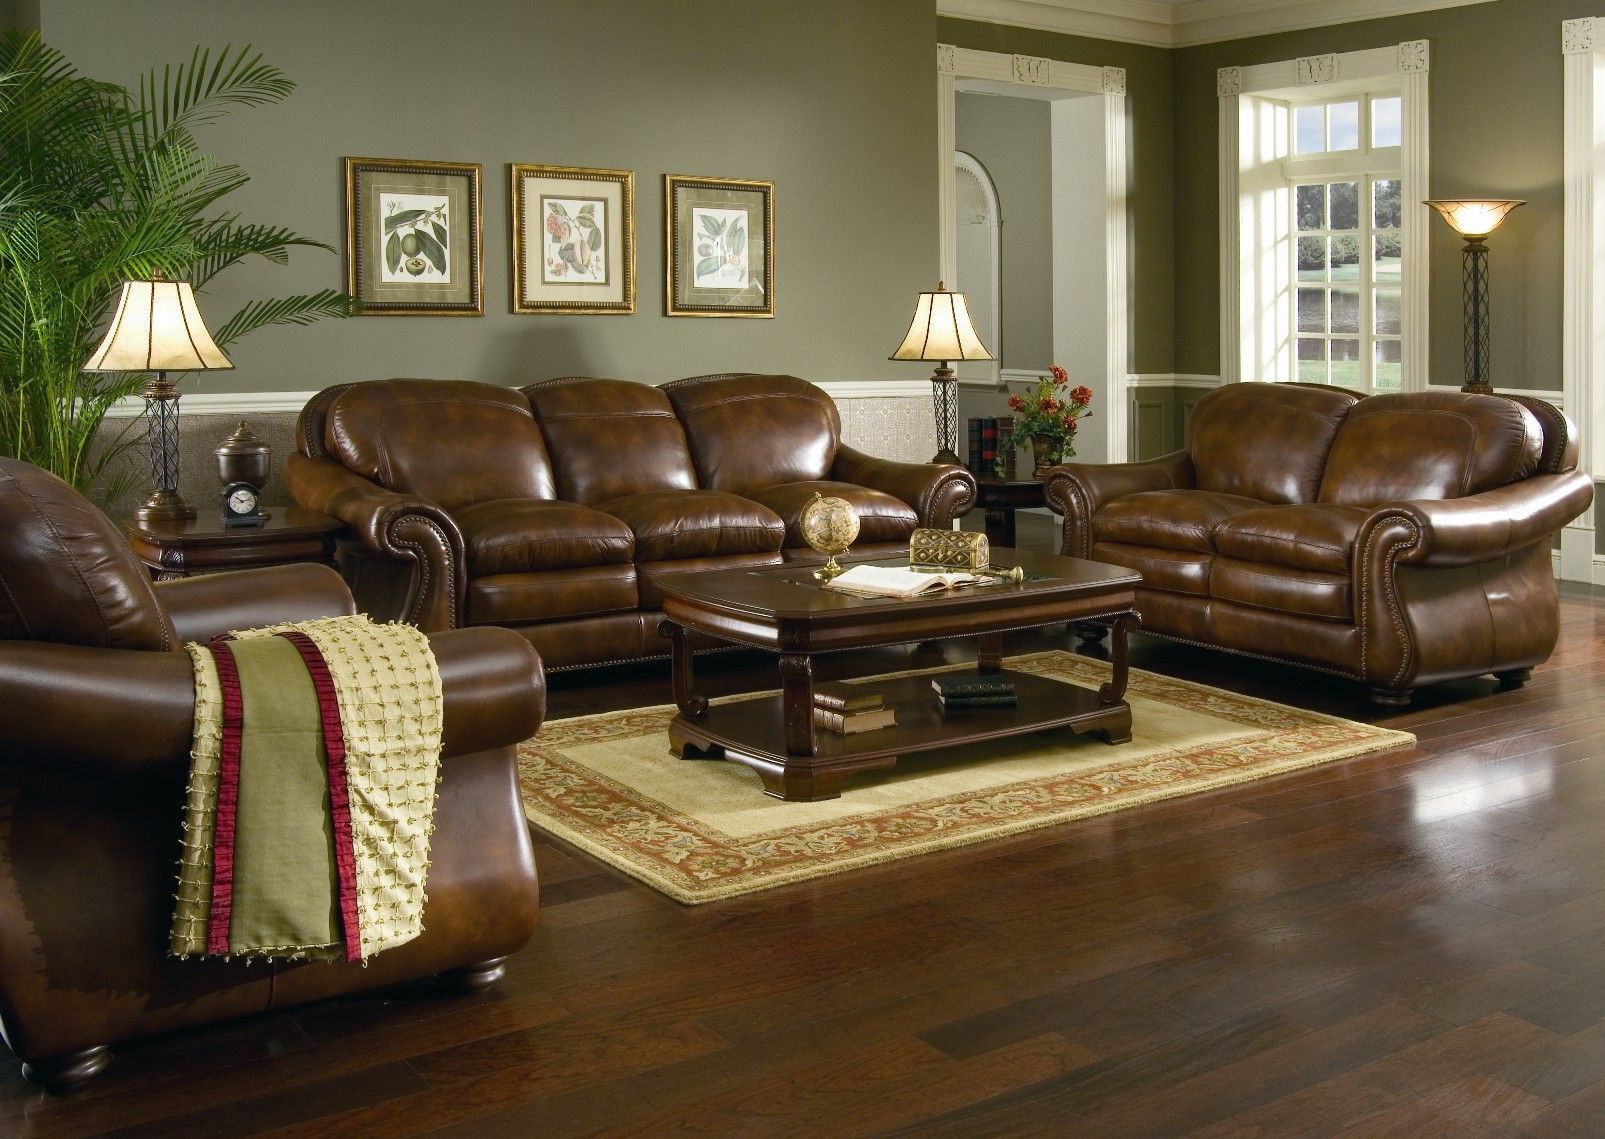 Gentil Brown Leather Sofa Set For Living Room With Dark Hardwood Floors